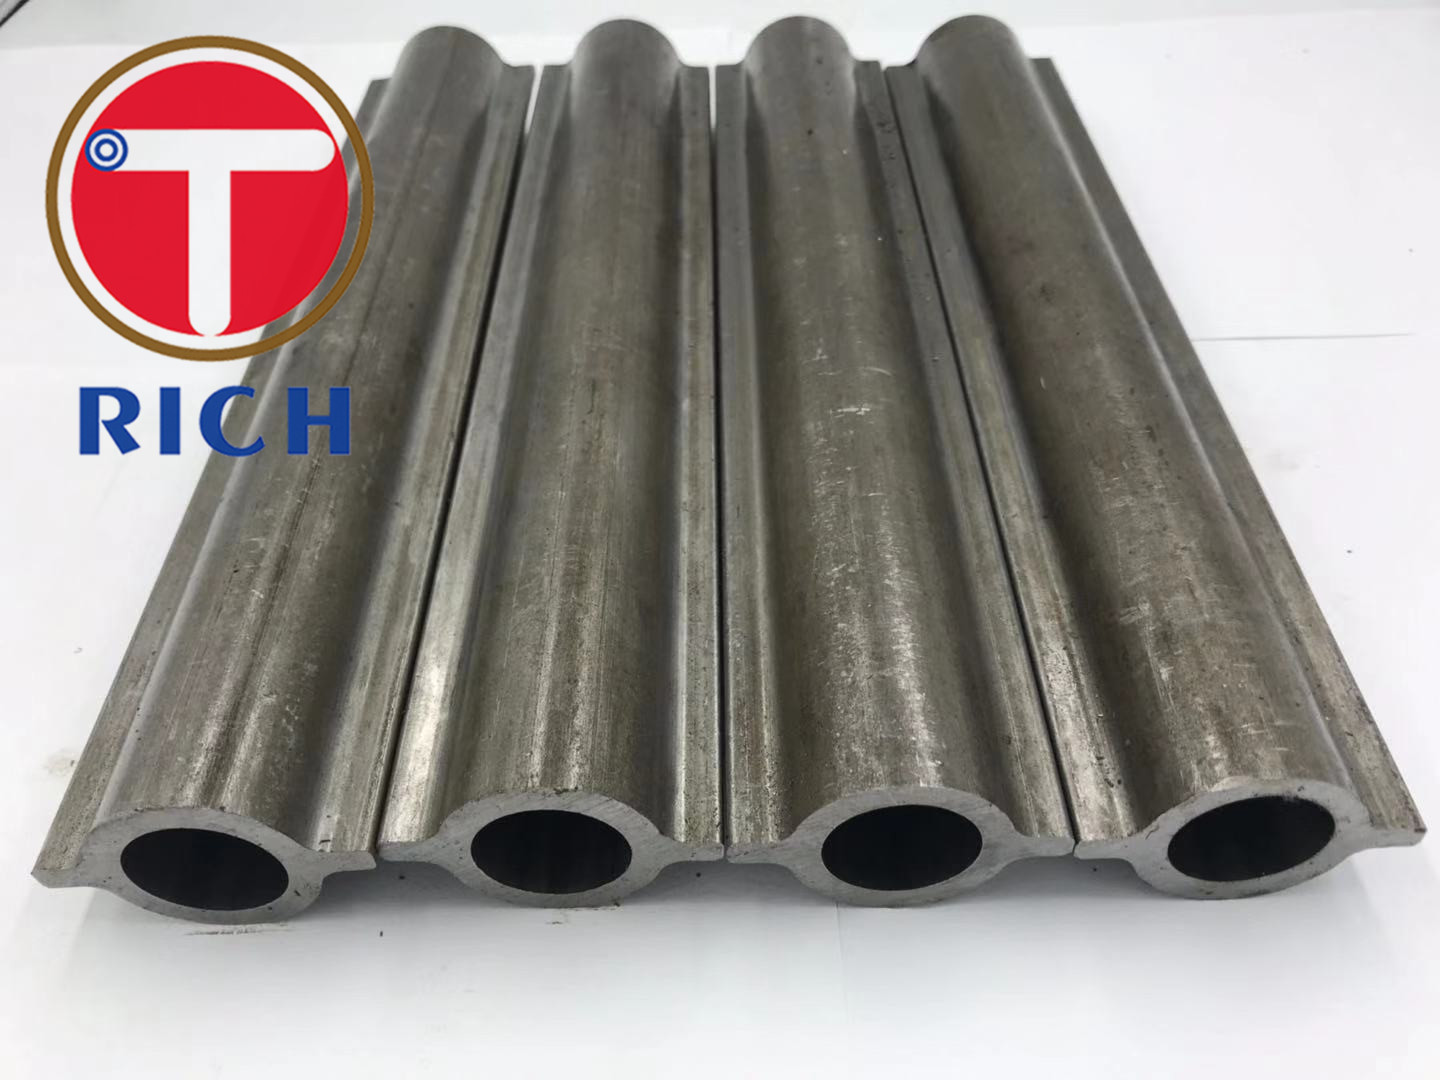 SA192 Profile Seamless Cold Drawn Shaped Carbon Steel Two Fins Pipe Round Boiler Finned Tube